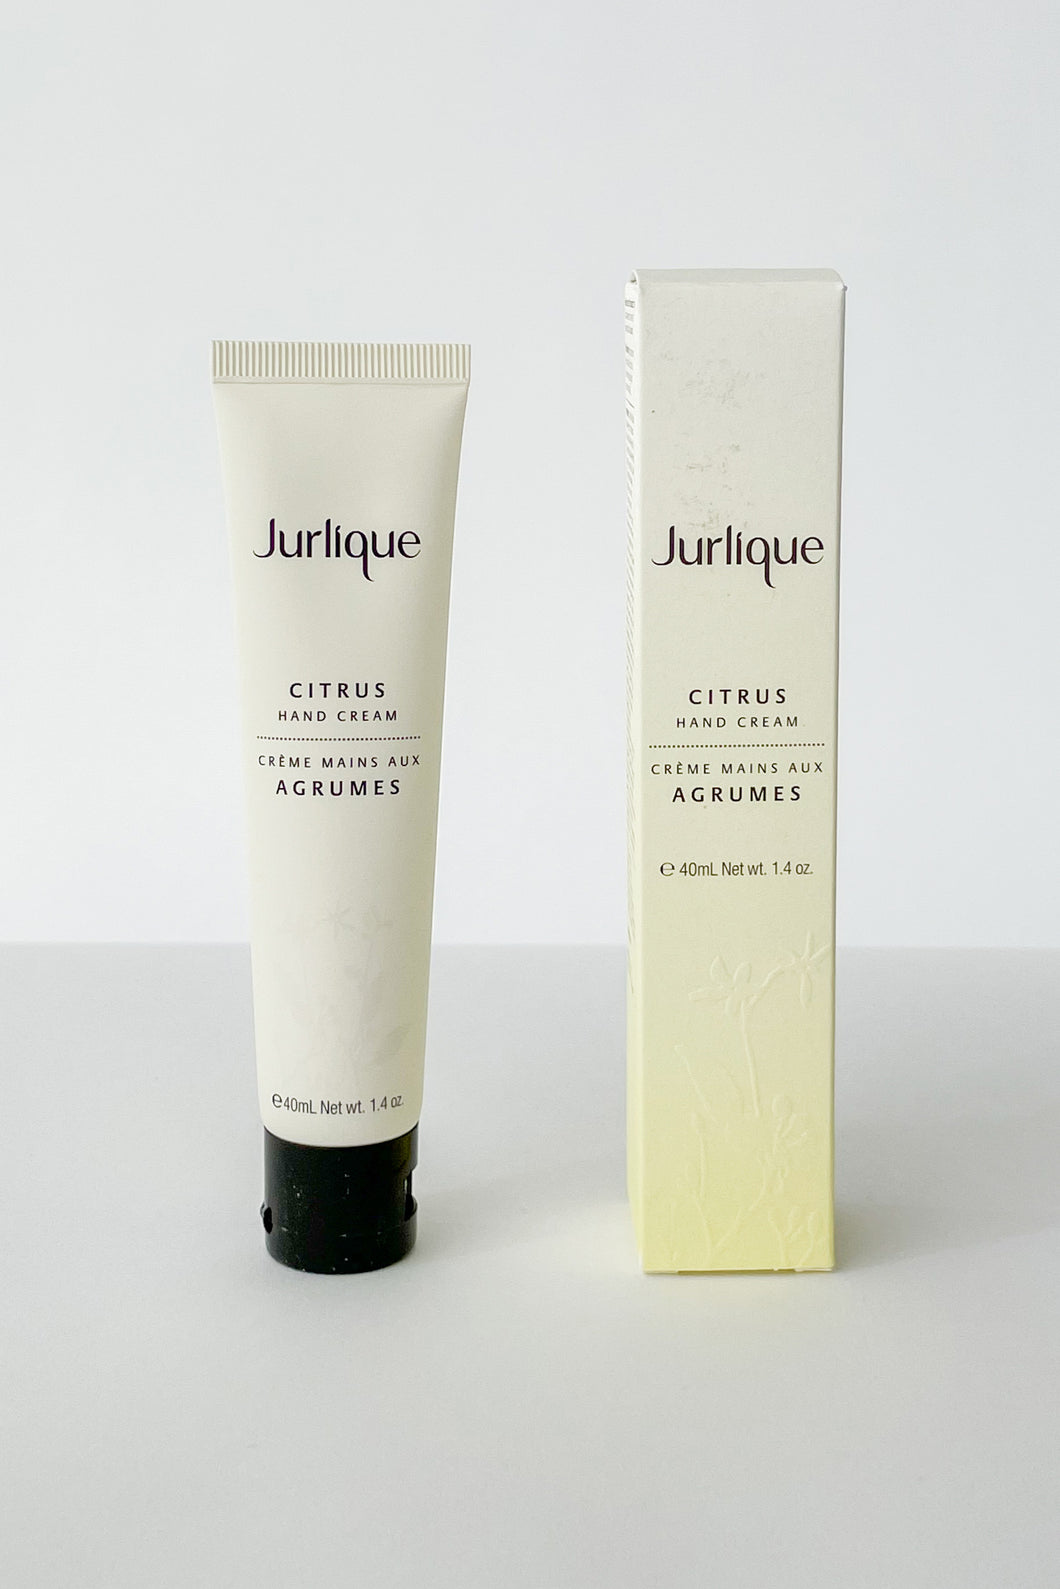 Jurlique | Citrus Hand Cream (40ml)